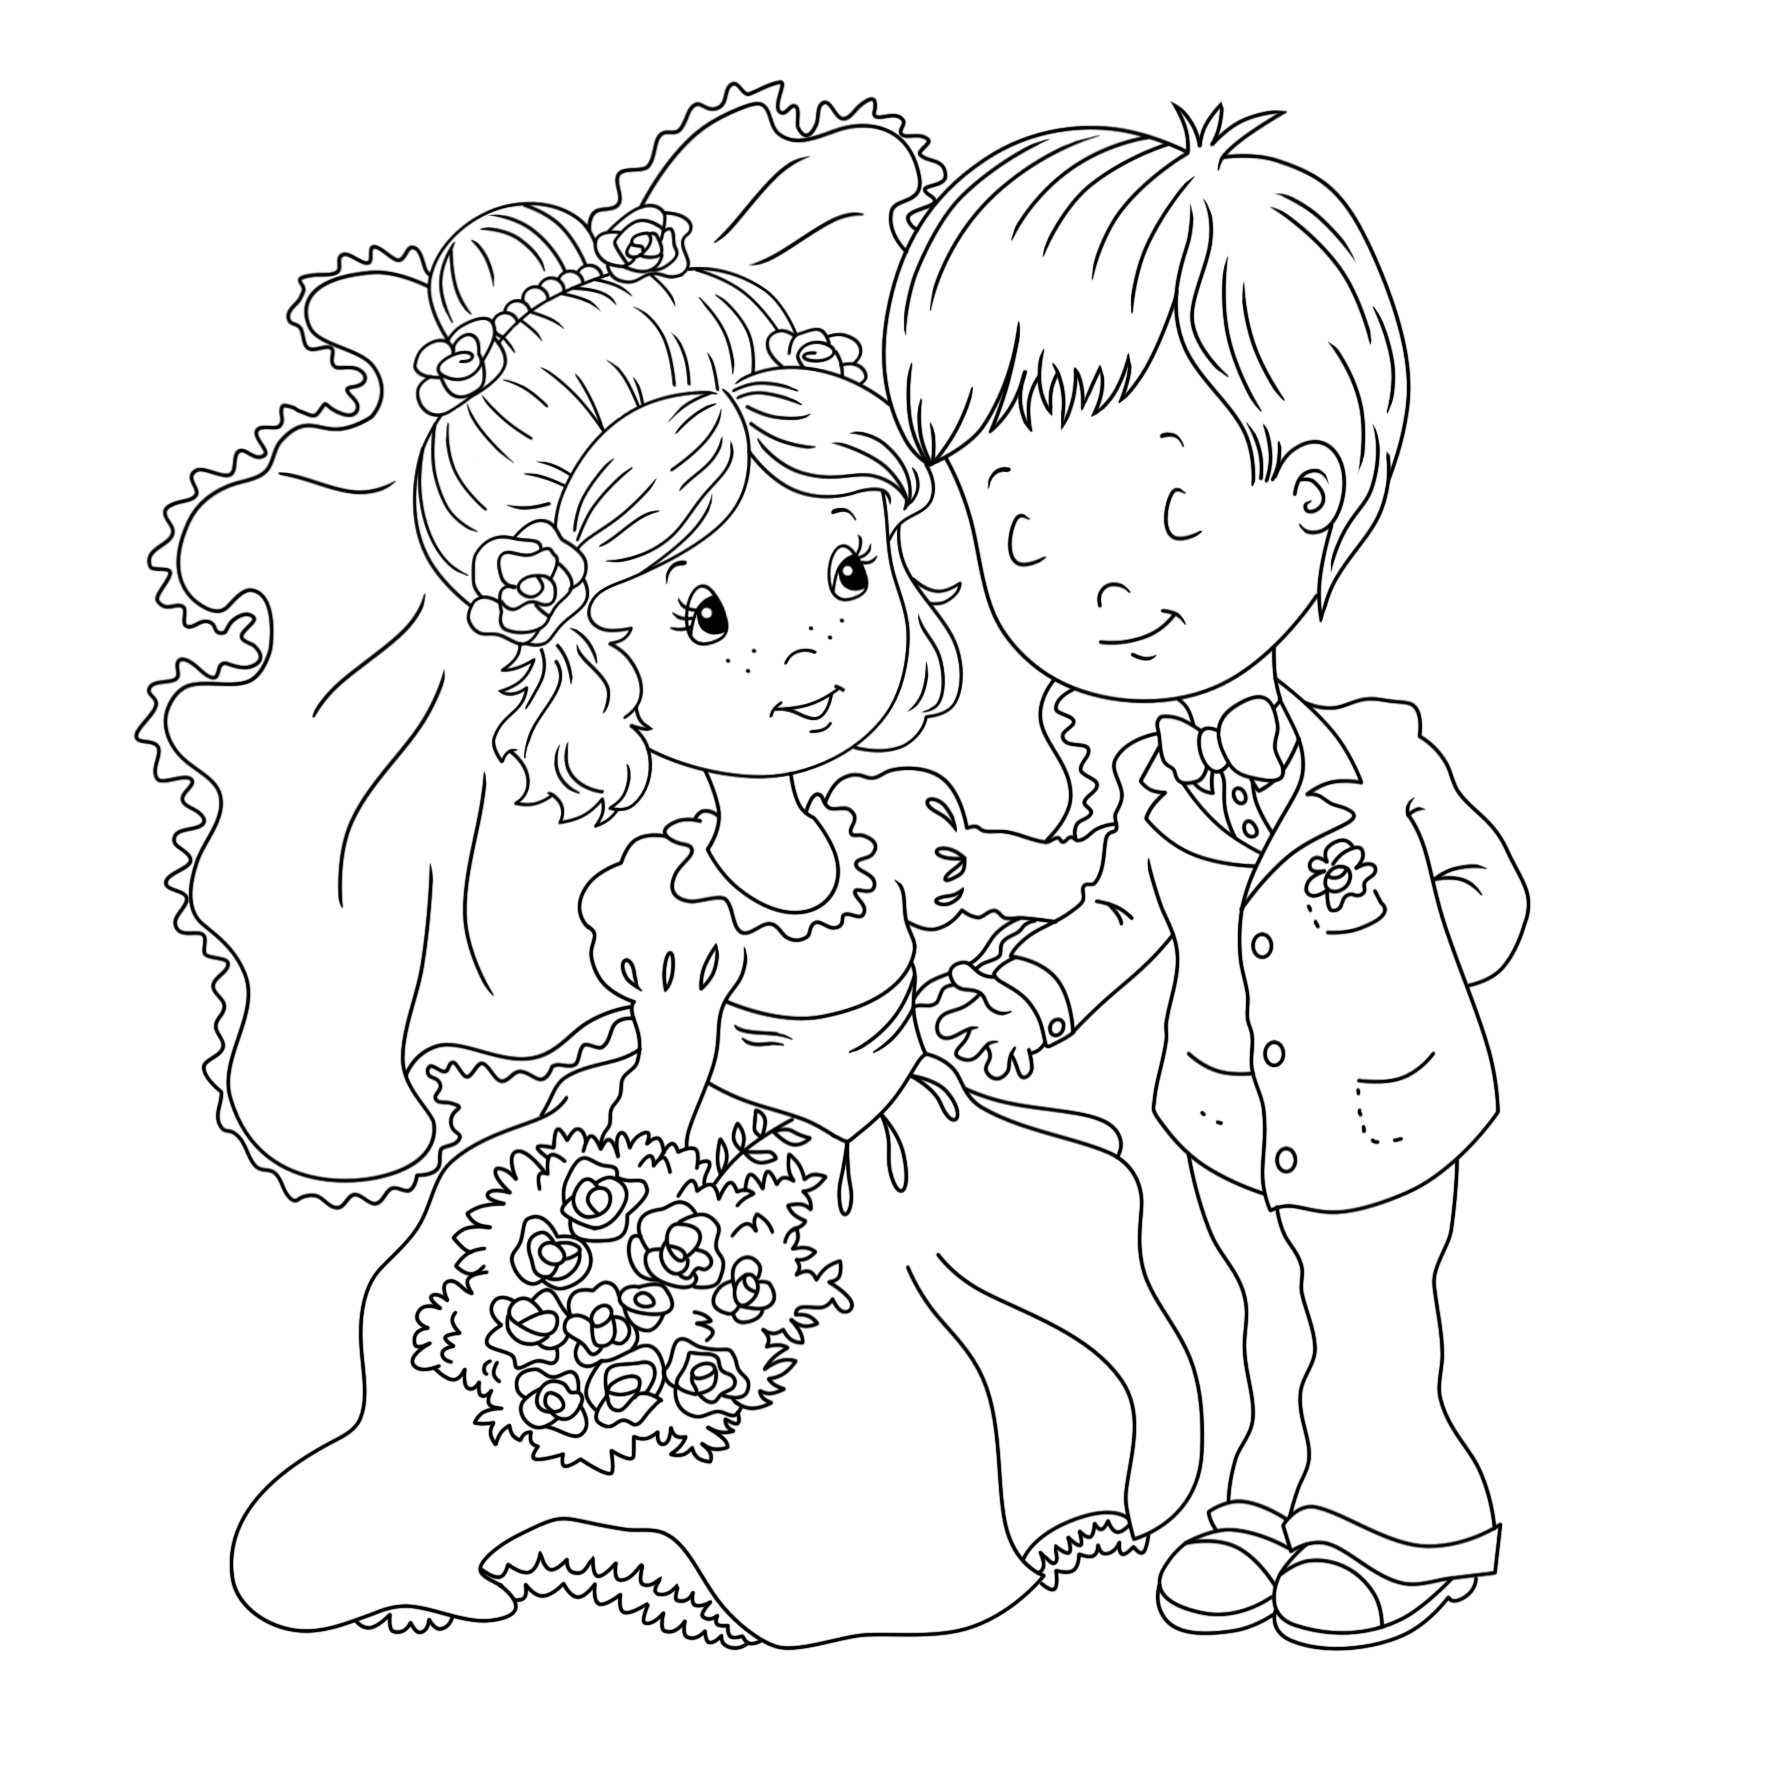 wedding coloring sheets wedding coloring pages 10 coloring kids coloring kids sheets wedding coloring